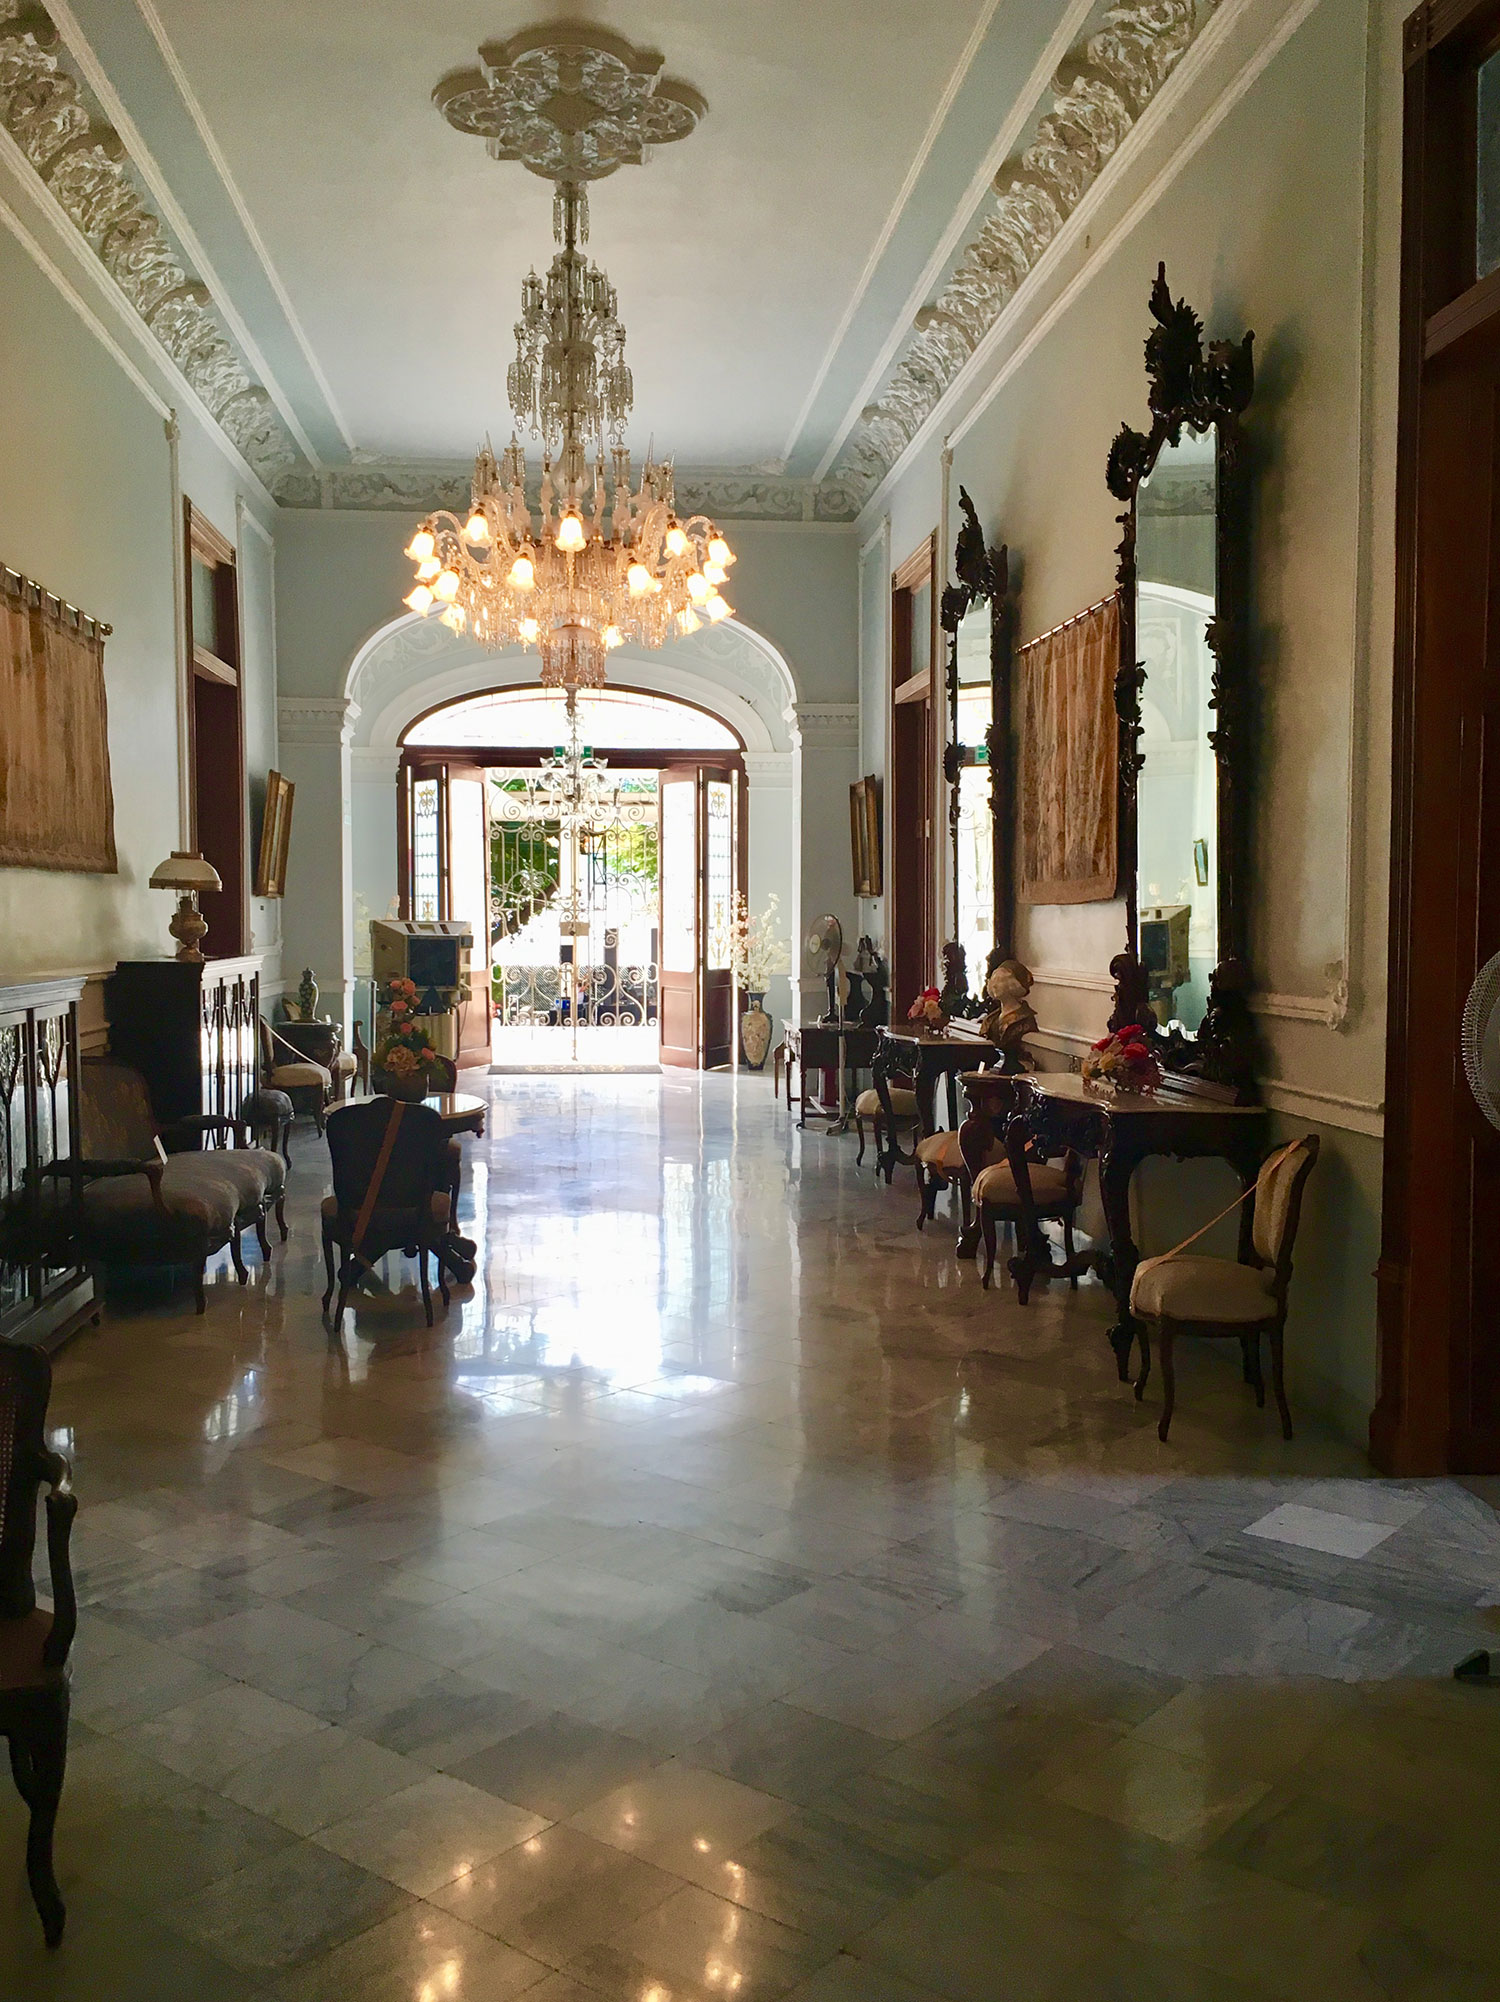 The entry hall.